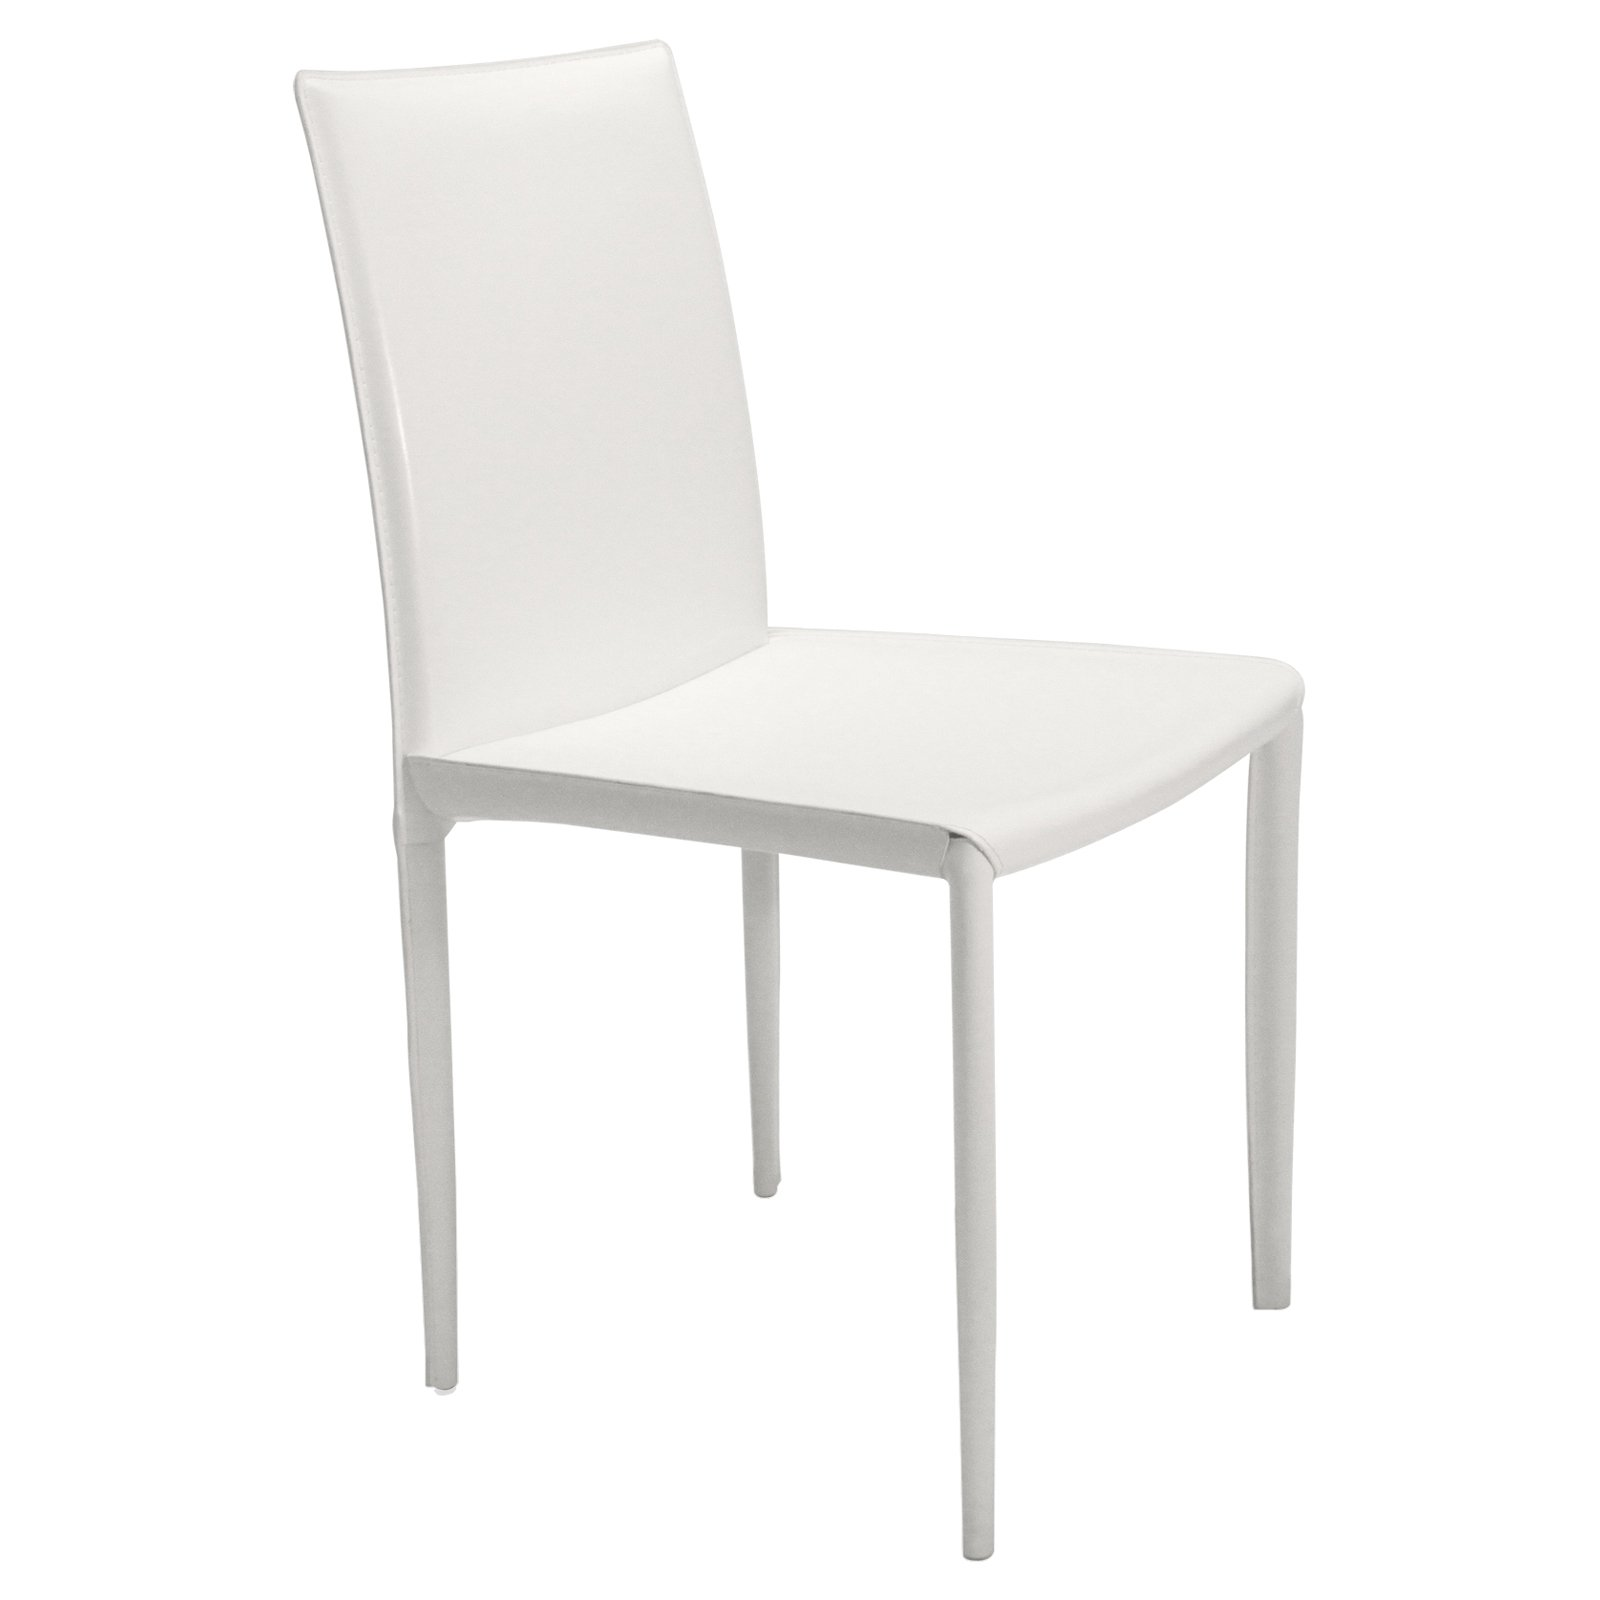 Image of Aeon Furniture Aimee Leather Dining Chairs - Set of 4